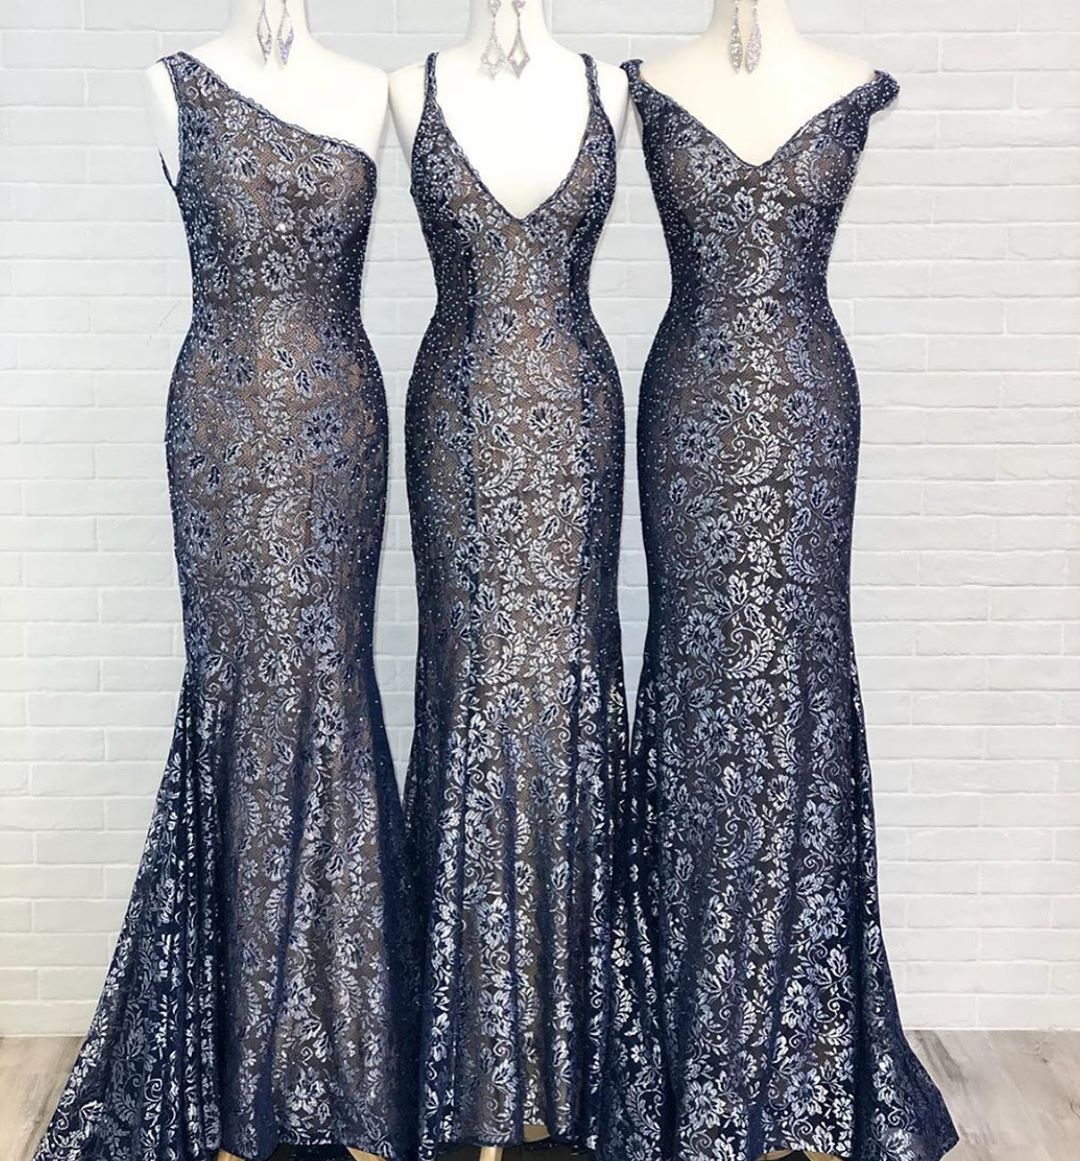 #JOVANI Knows Lace 💙 These amazing styles are in store & ready to order!   Shop now ➡️ https://t.co/NLSnXVV4xk https://t.co/xo7bHMYn8S